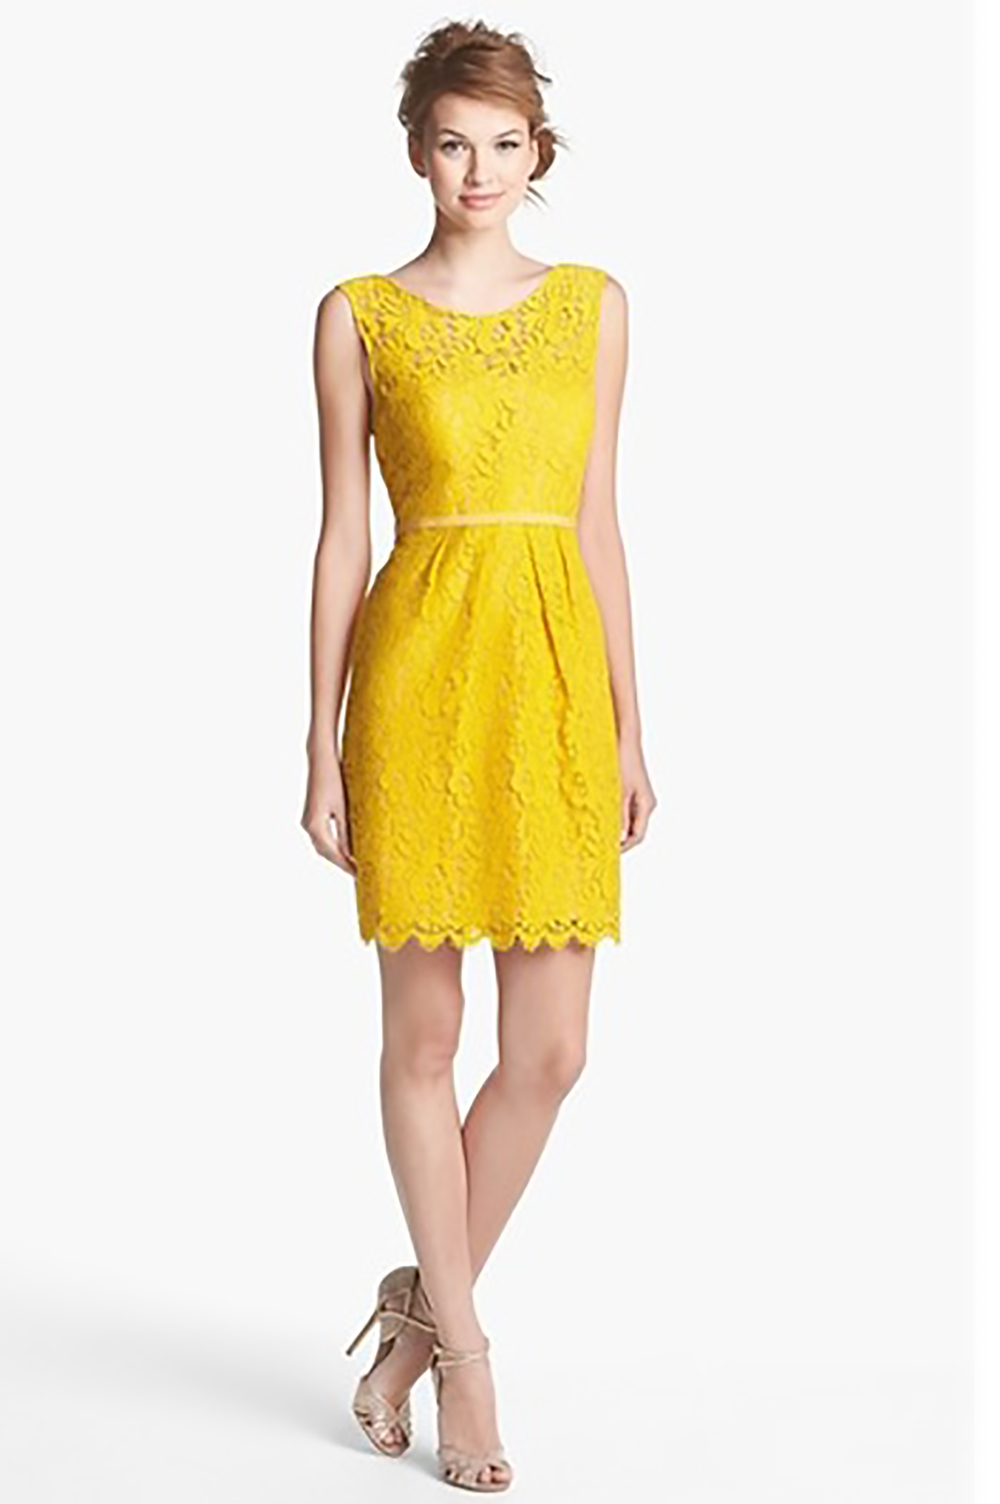 nordstrom jenny yoo harlow tea lace sheath dress holiday party 1500.jpg